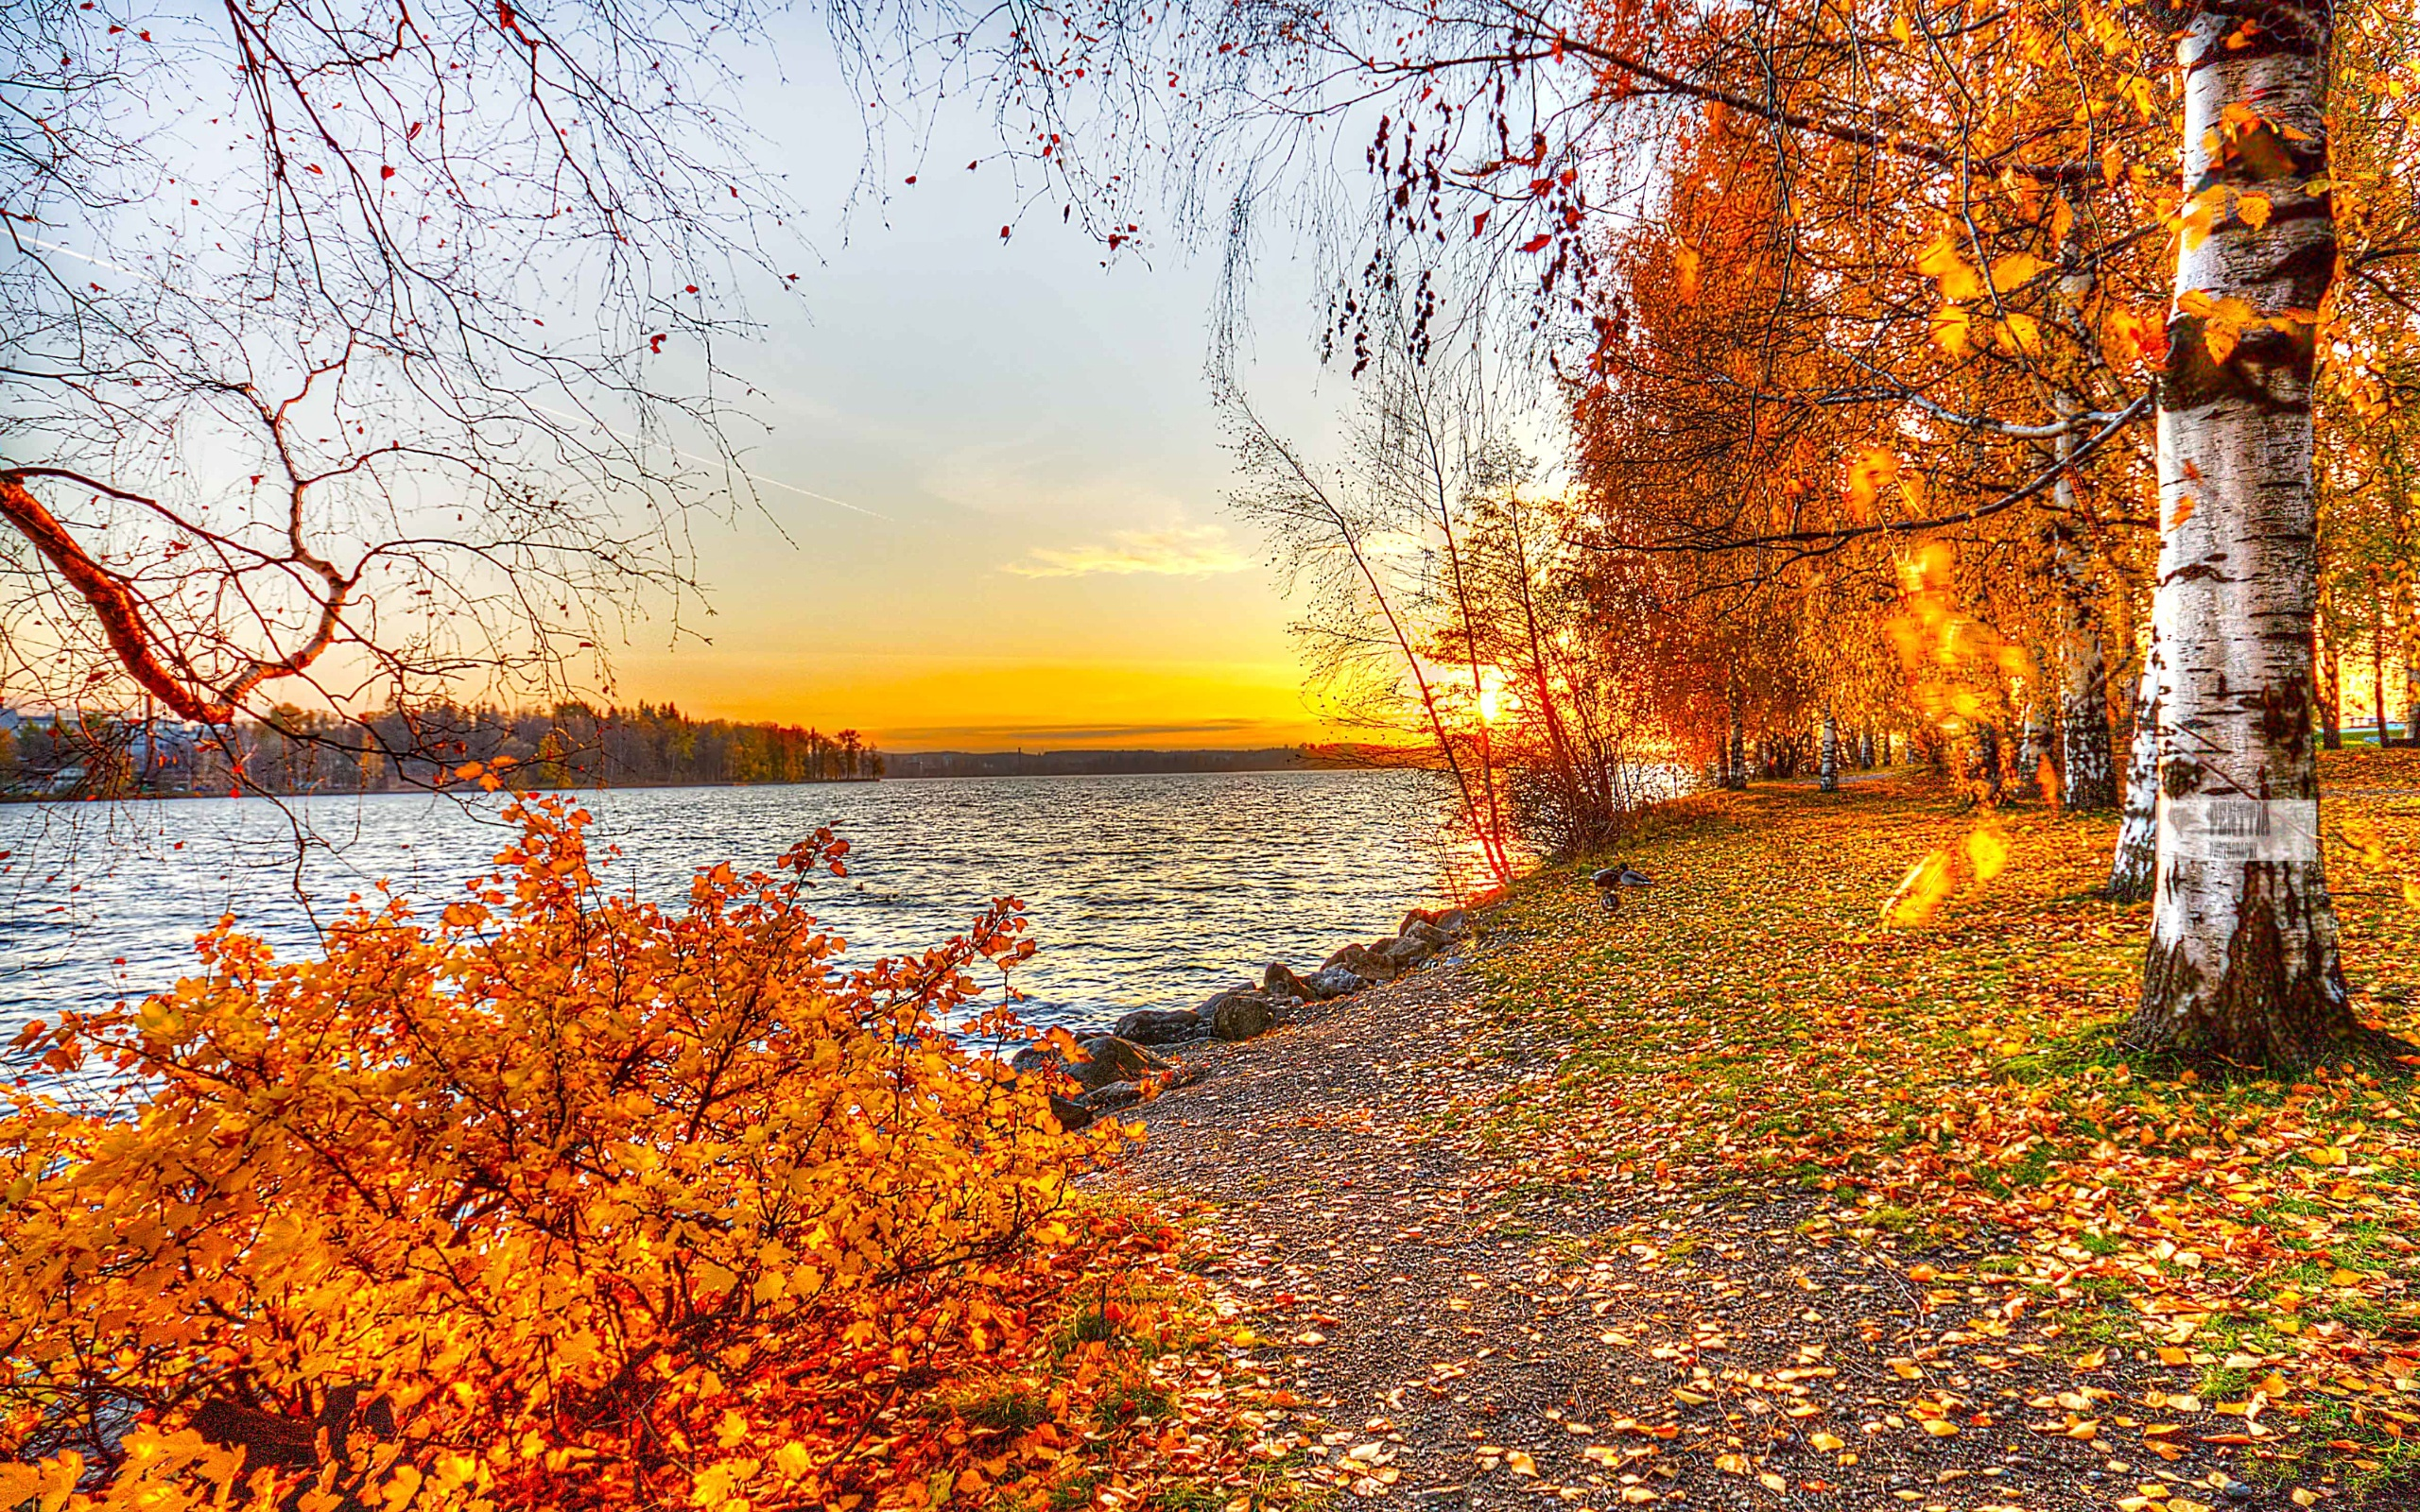 20710 download wallpaper Landscape, Rivers, Trees, Sunset, Autumn screensavers and pictures for free